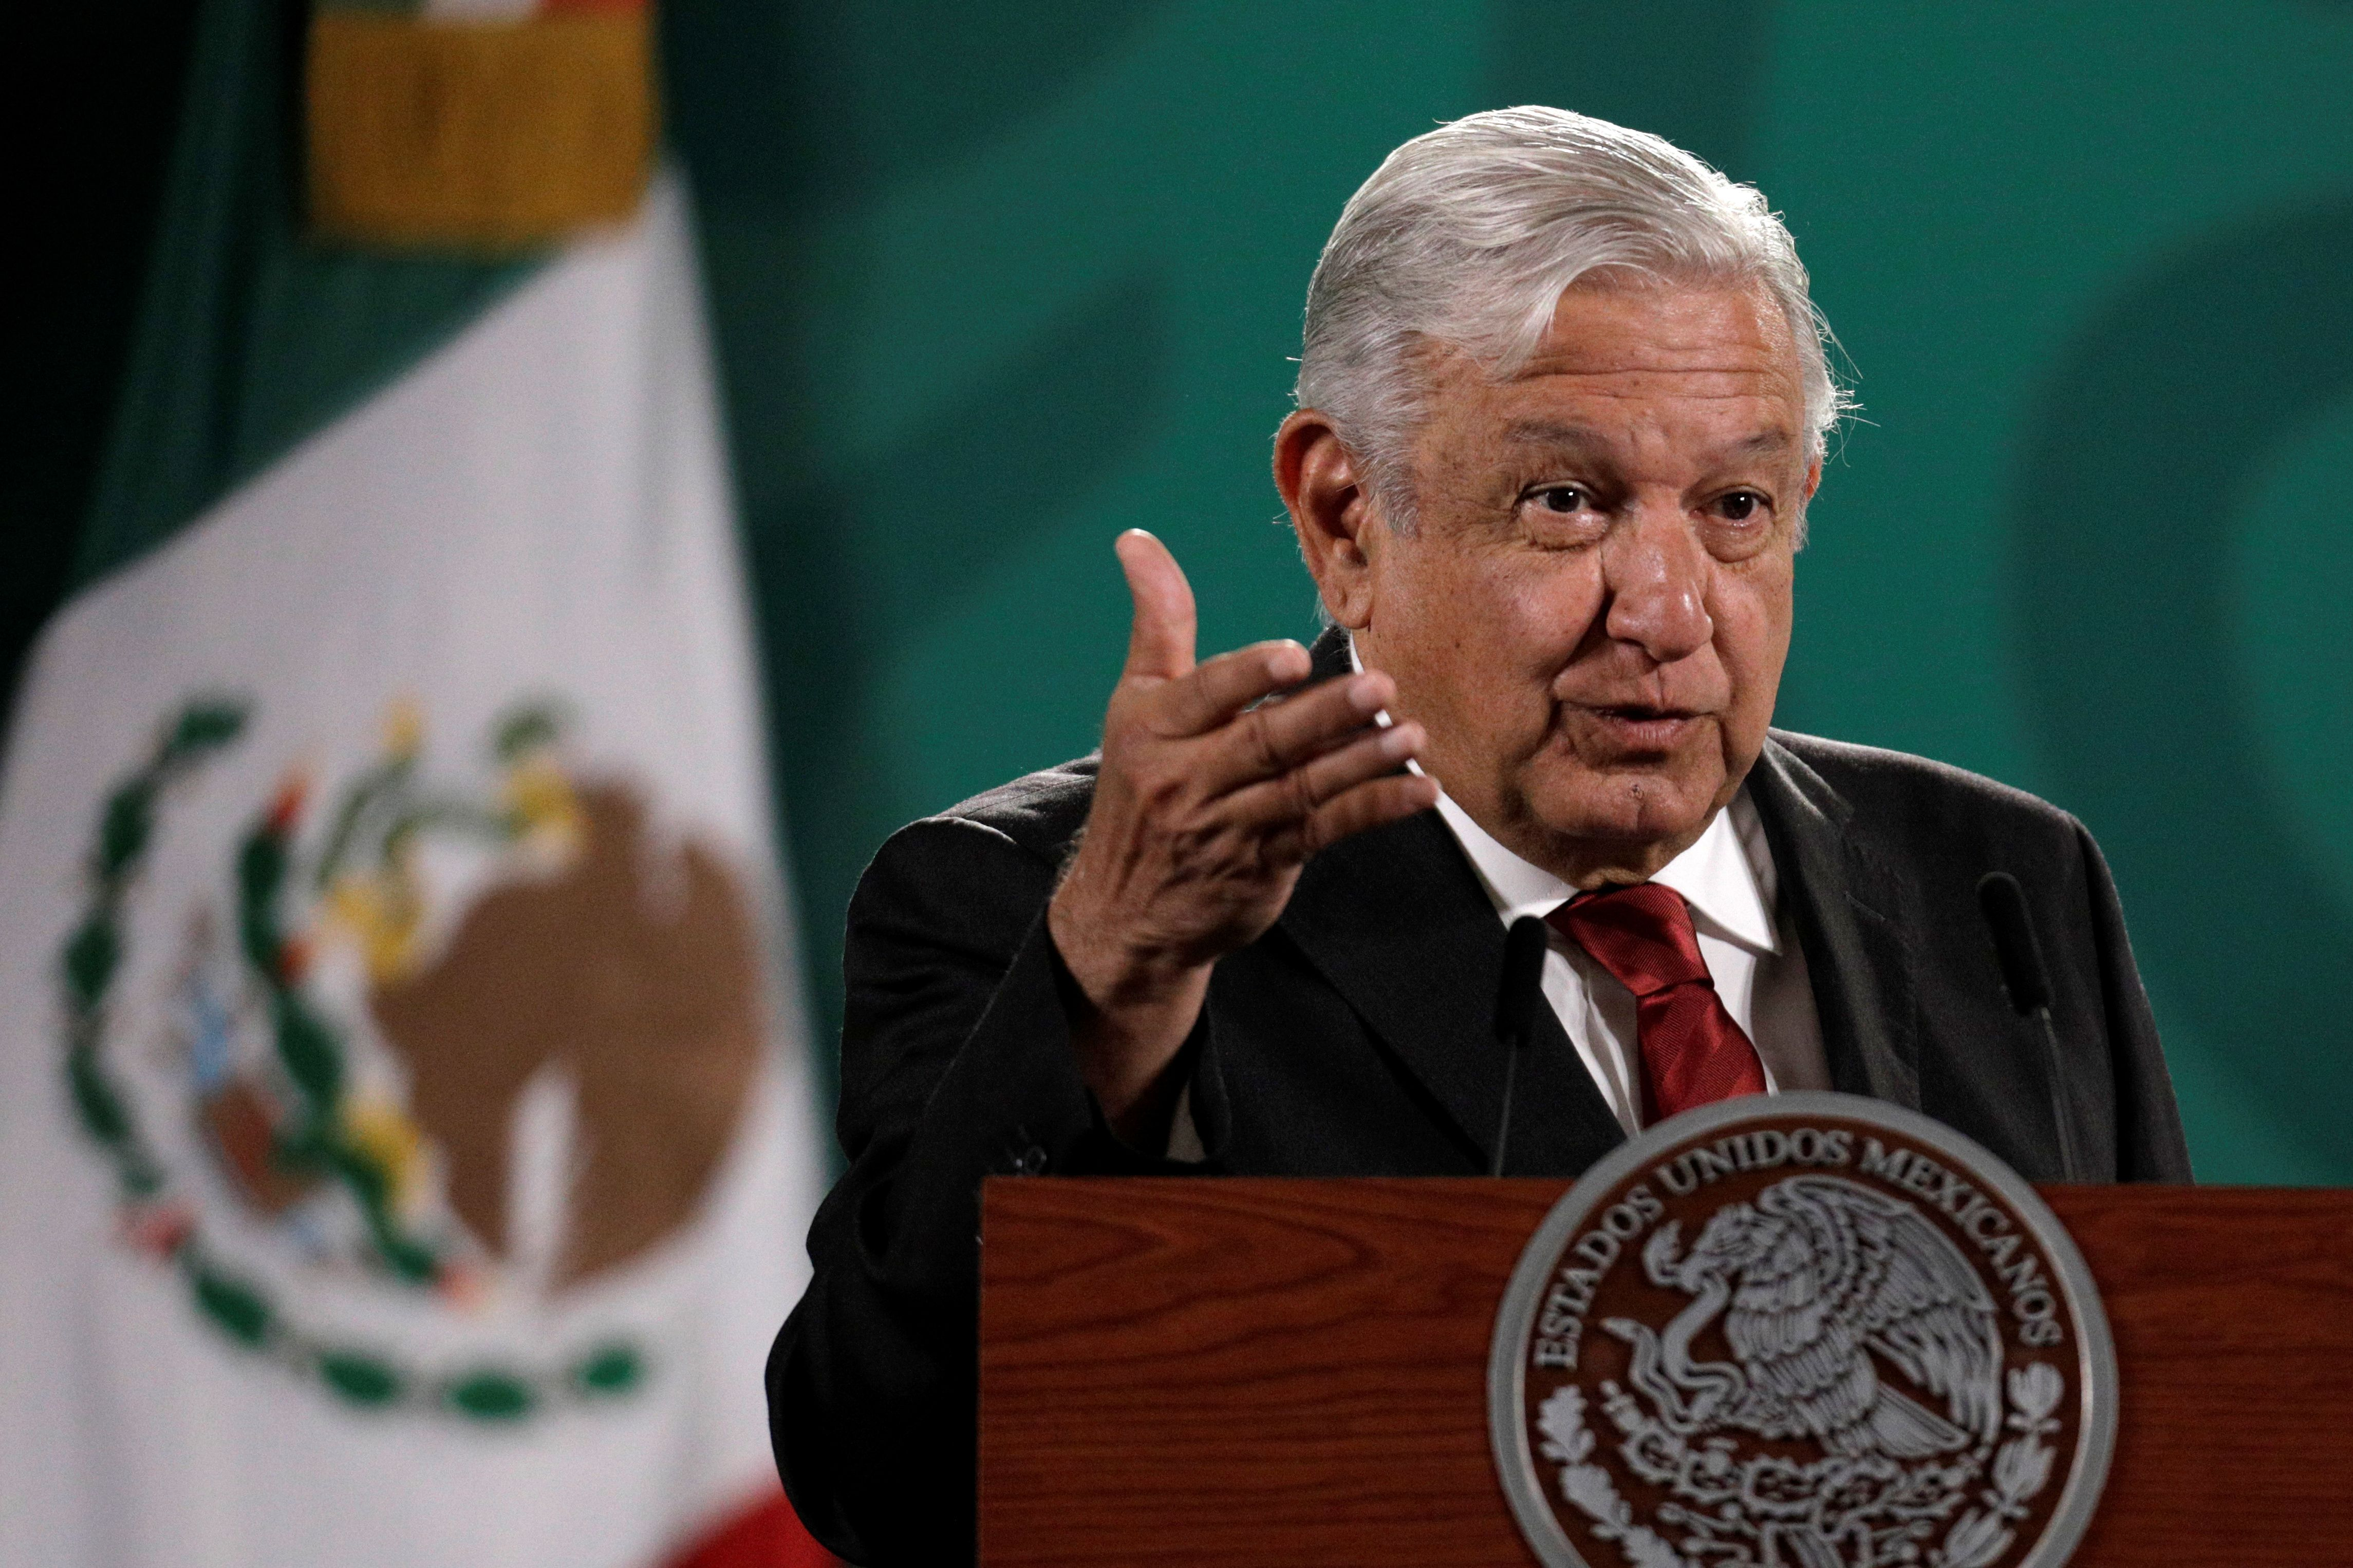 Mexican President Andres Manuel Lopez Obrador gestures during a news conference at the National Palace in Mexico City, Mexico June 15, 2021. REUTERS/Luis Cortes